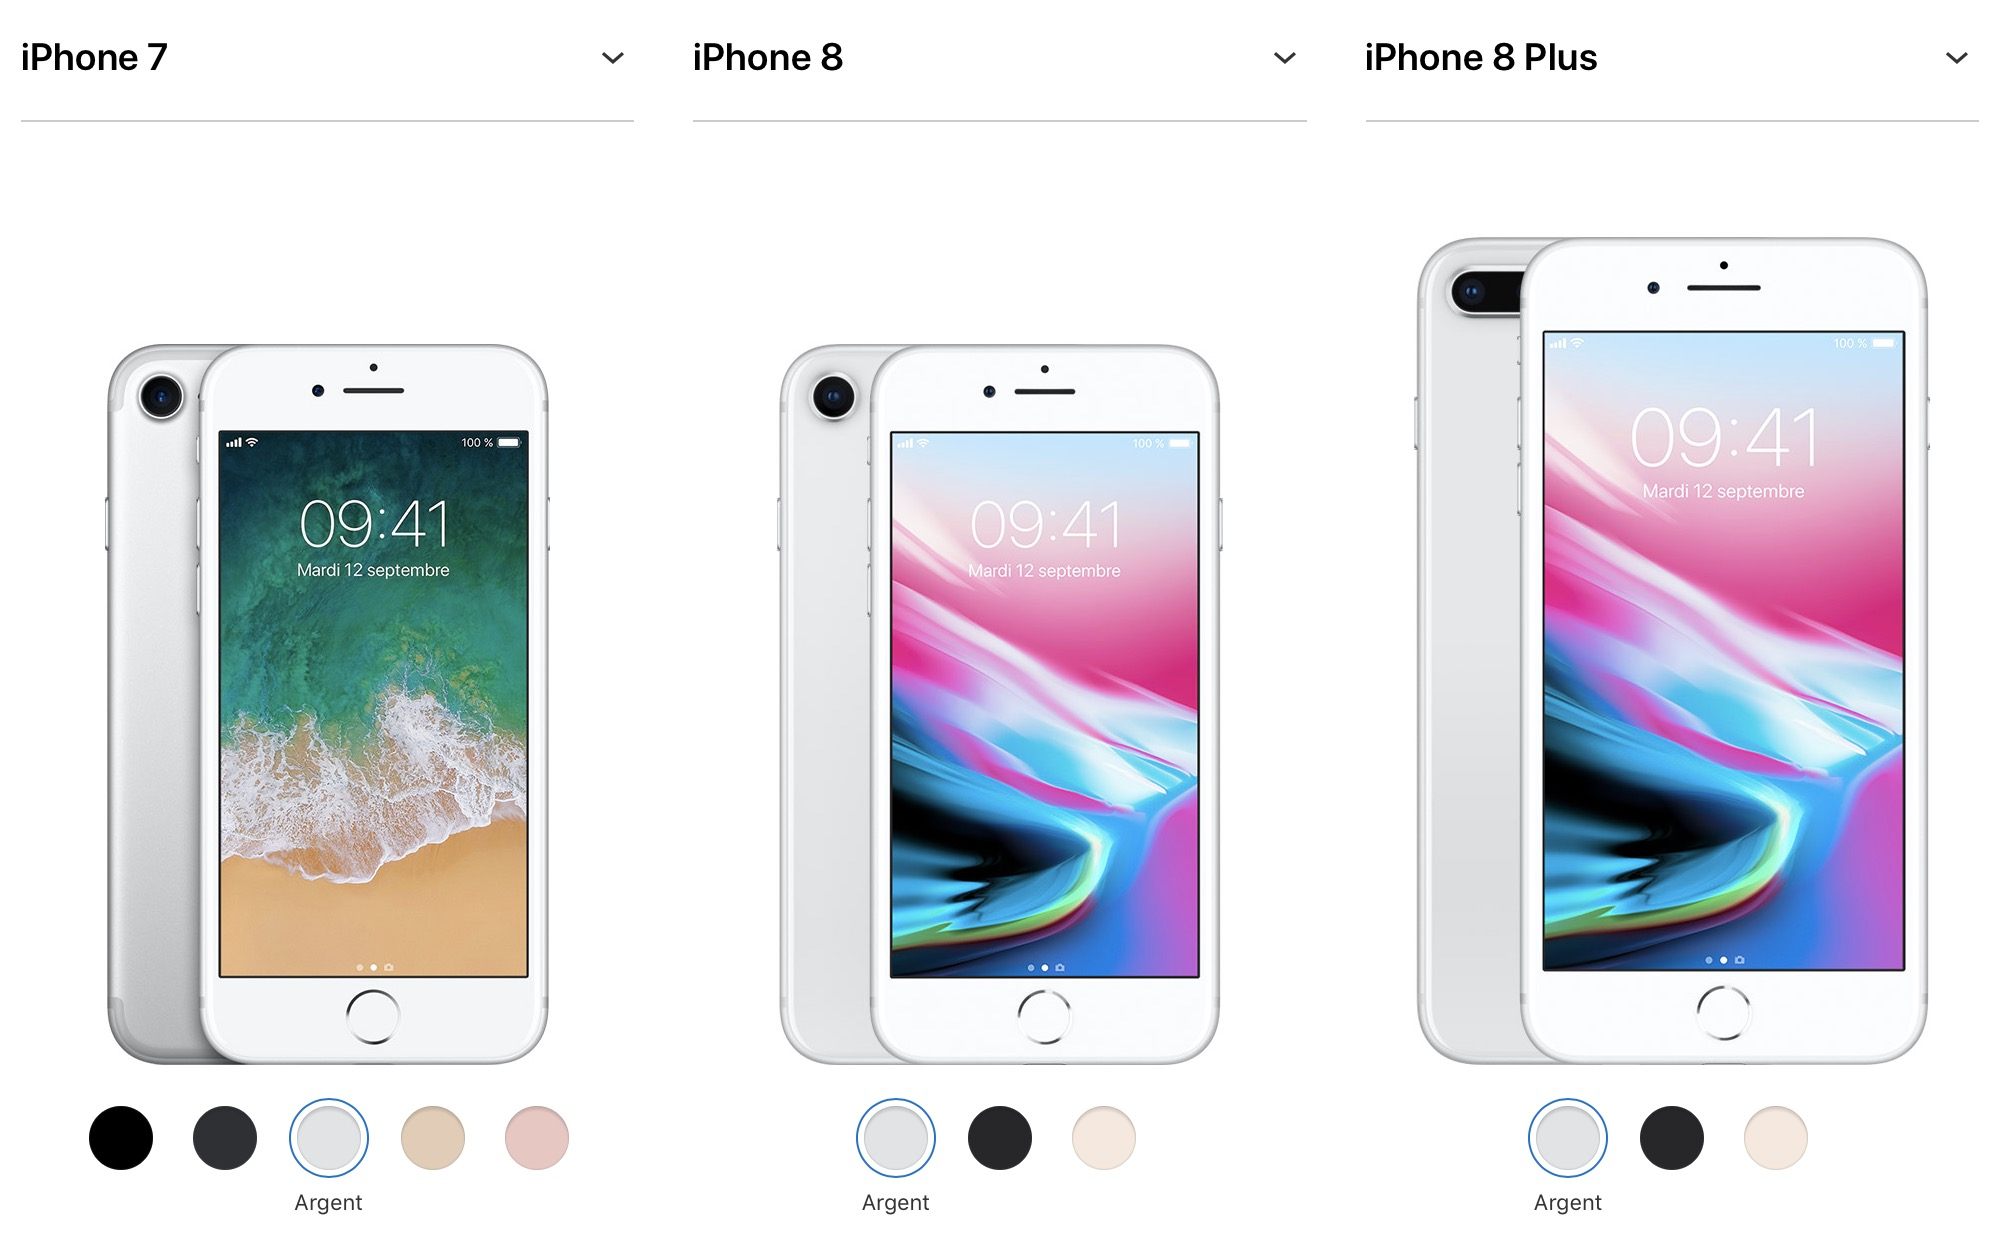 comment espionner un iphone 6s Plus a distance